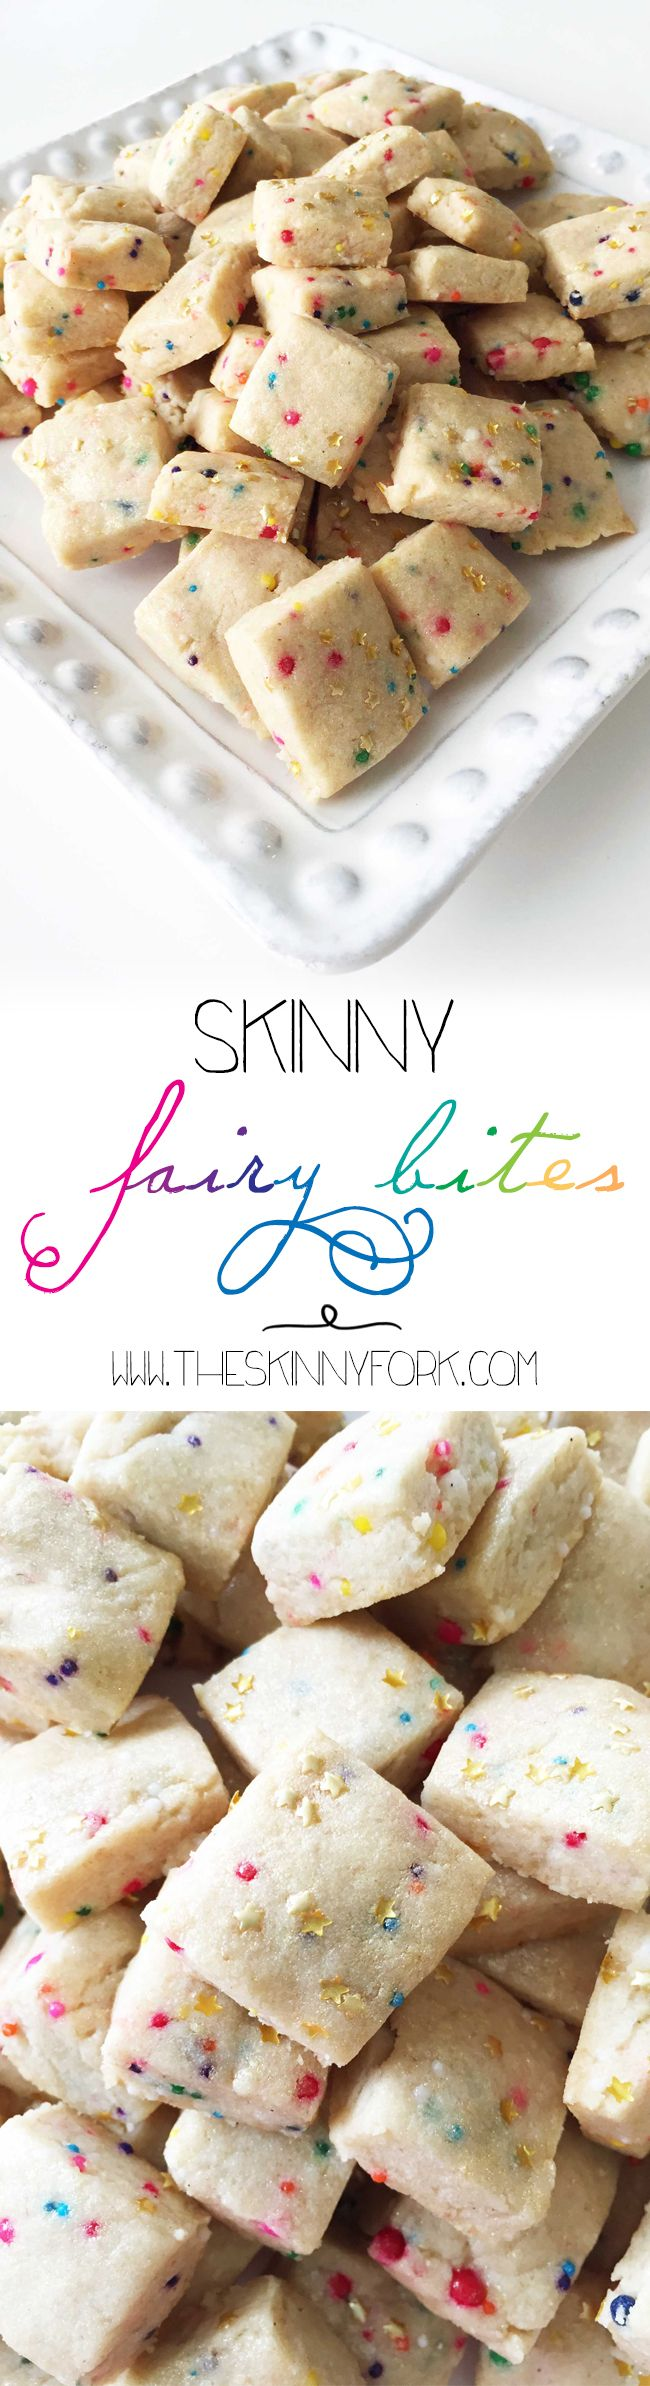 Skinny Fairy Bites - Delicious little bites of short bread with rainbow sprinkles and pixie dust sparkle! TheSkinnyFork.com